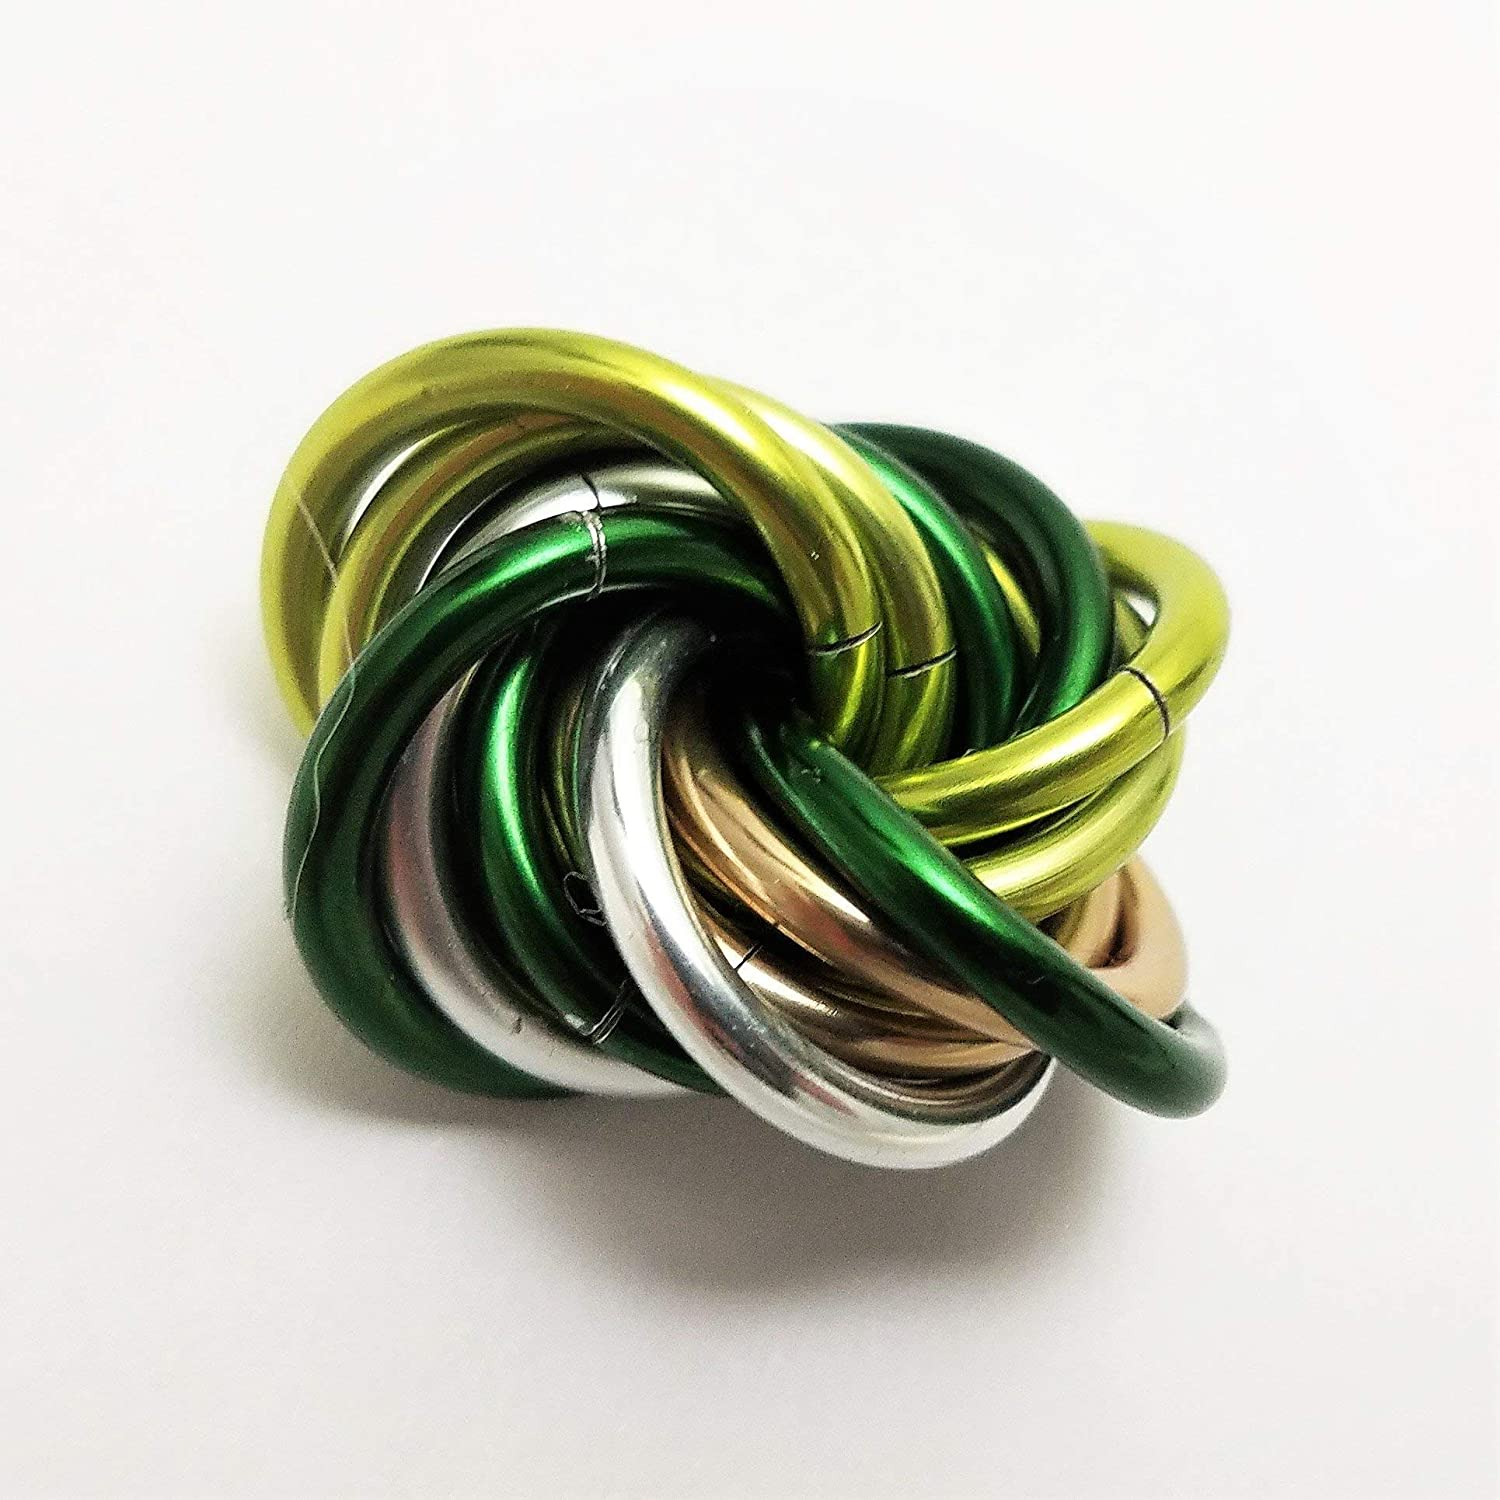 Möbii Shamrock: Small Mobius Hand Fidget Toy, Shiny Emerald Green and Silver Stress Ball for Restless Hands, Office Toy